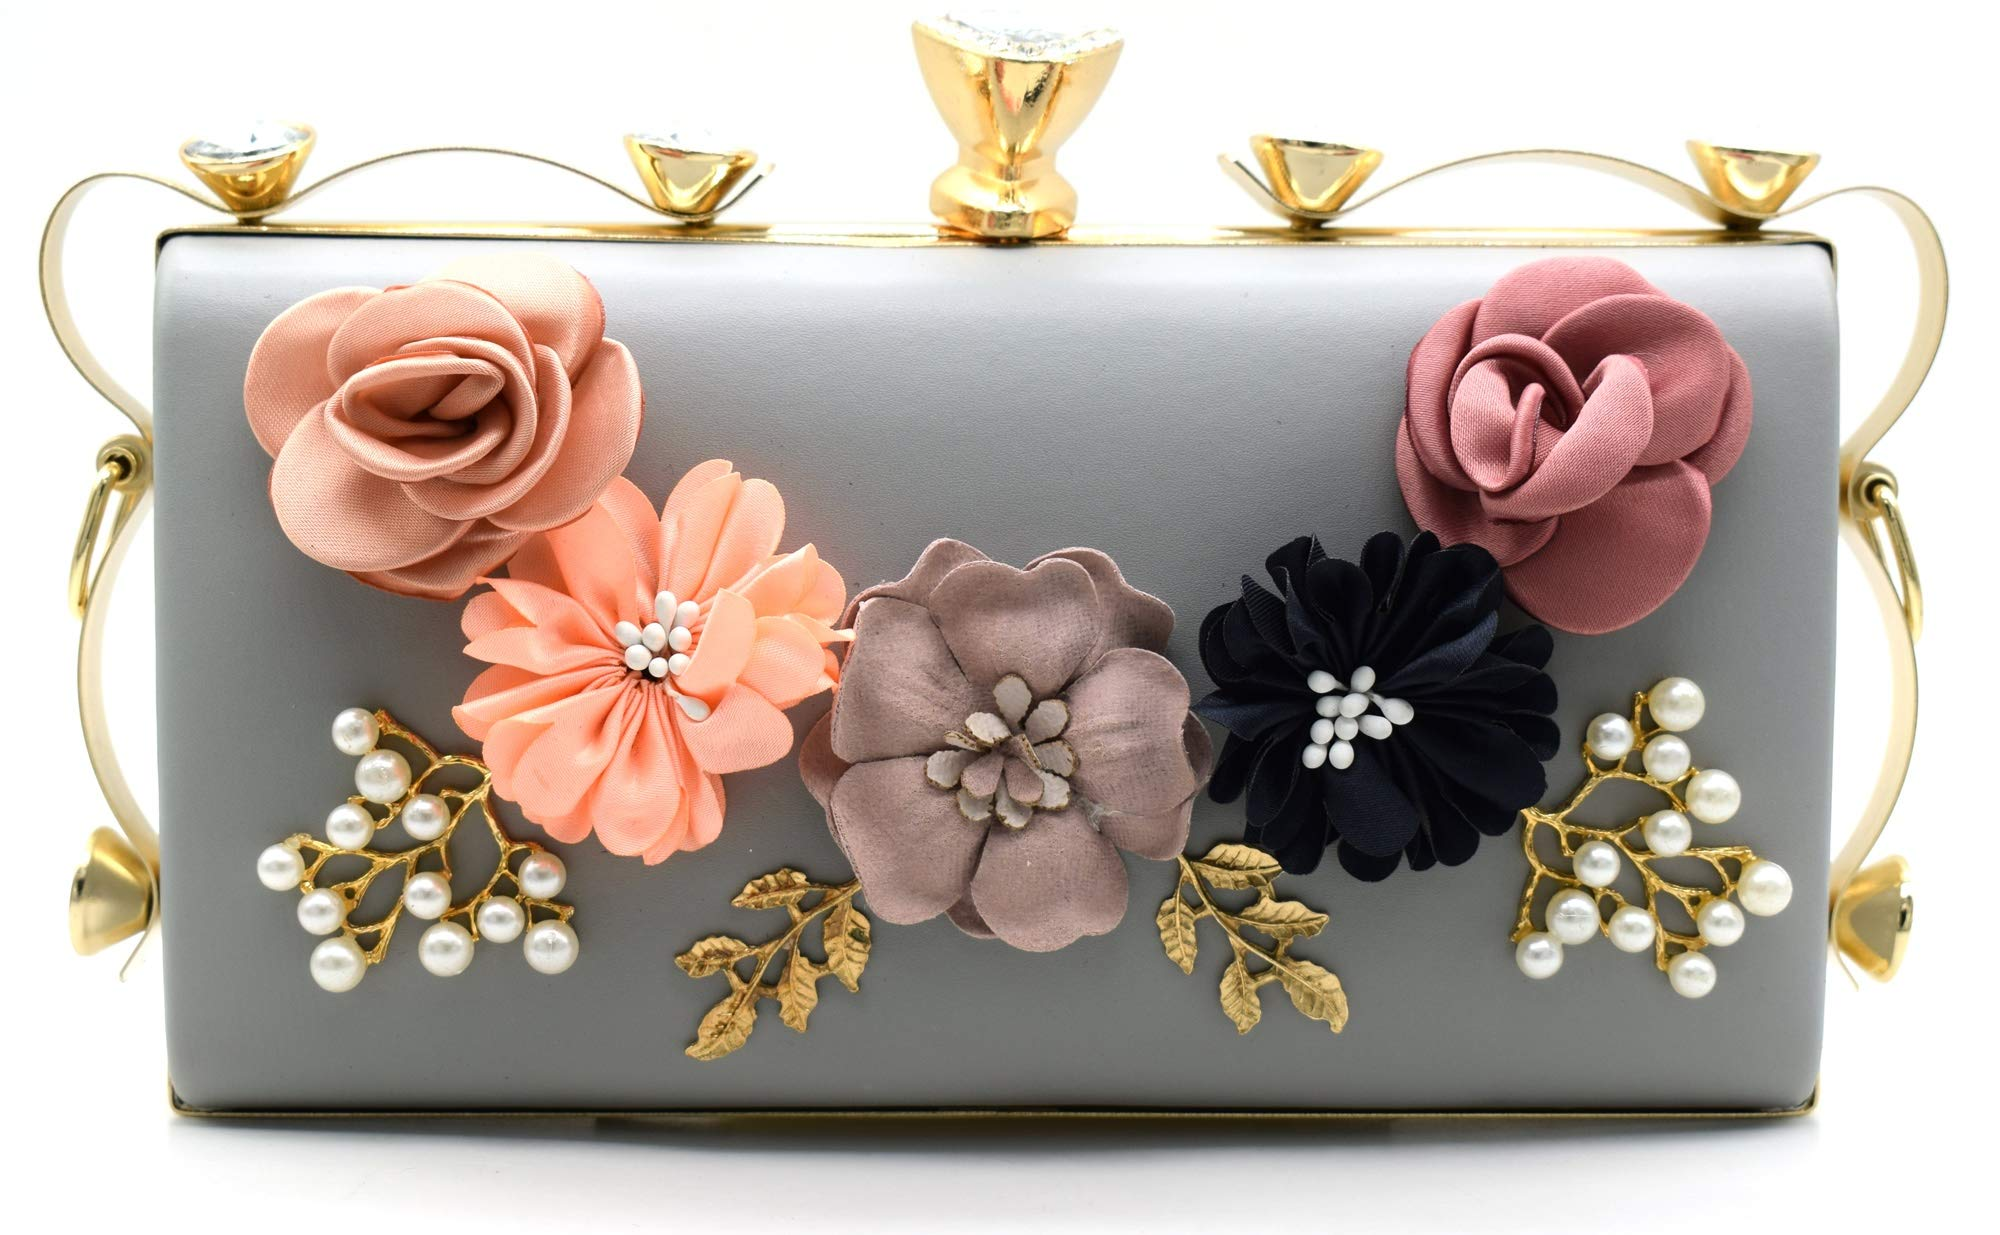 Tooba Handicraft Party Wear Flower Embellished Box Clutch Bag Purse For Bridal, Casual, Party, Wedding product image